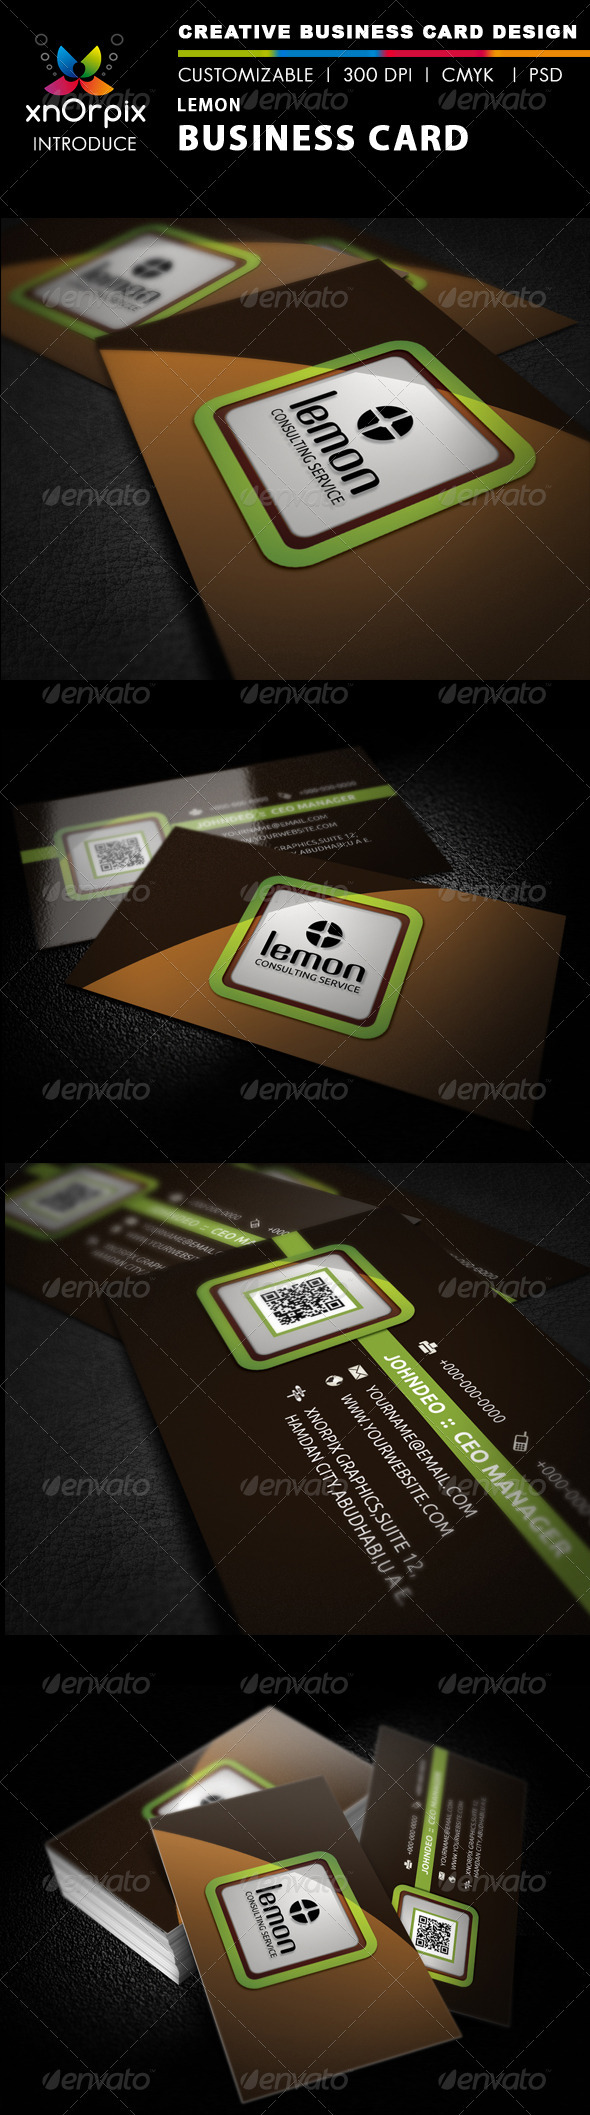 Lemon Business Card - Business Cards Print Templates